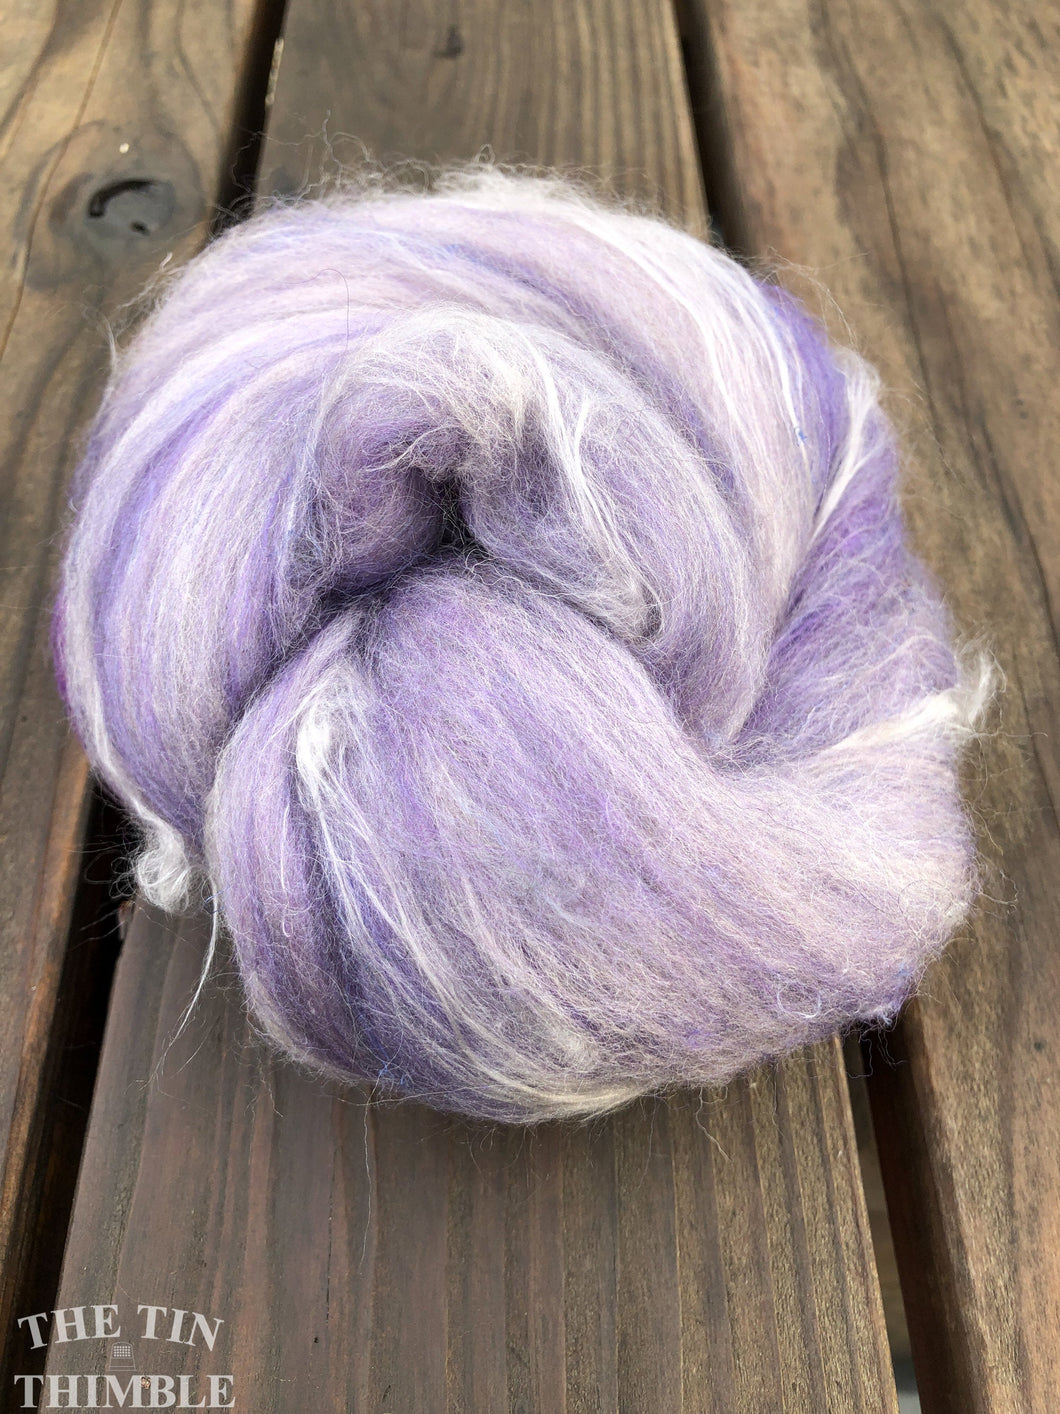 Hand Carded Batt for Felting or Spinning - Blend of Merino, Silk & Other Fibers - Hand Dyed and Commercially Dyed Fibers